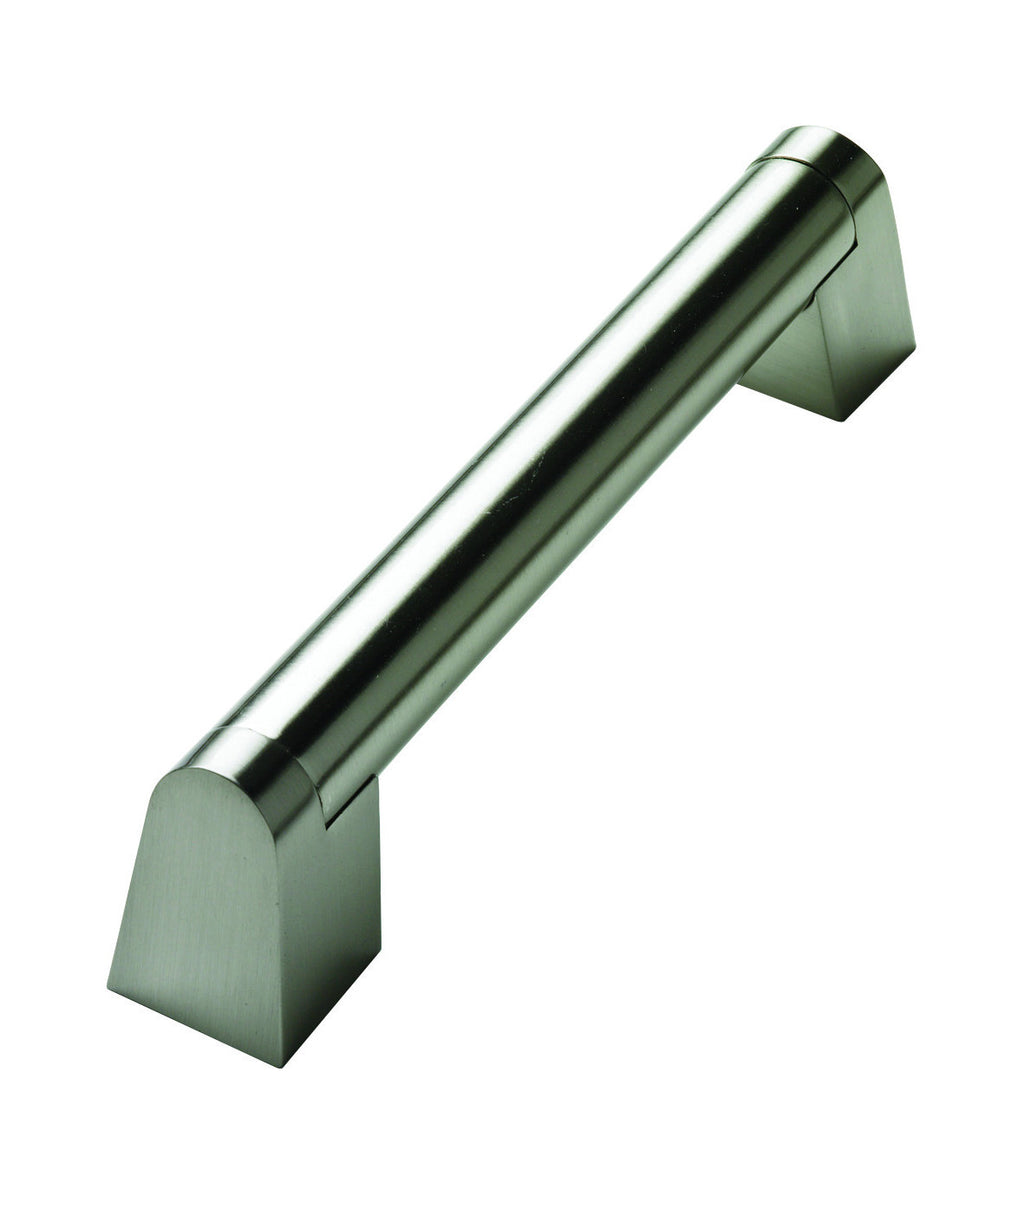 Angled Boss Handle Stainless Steel